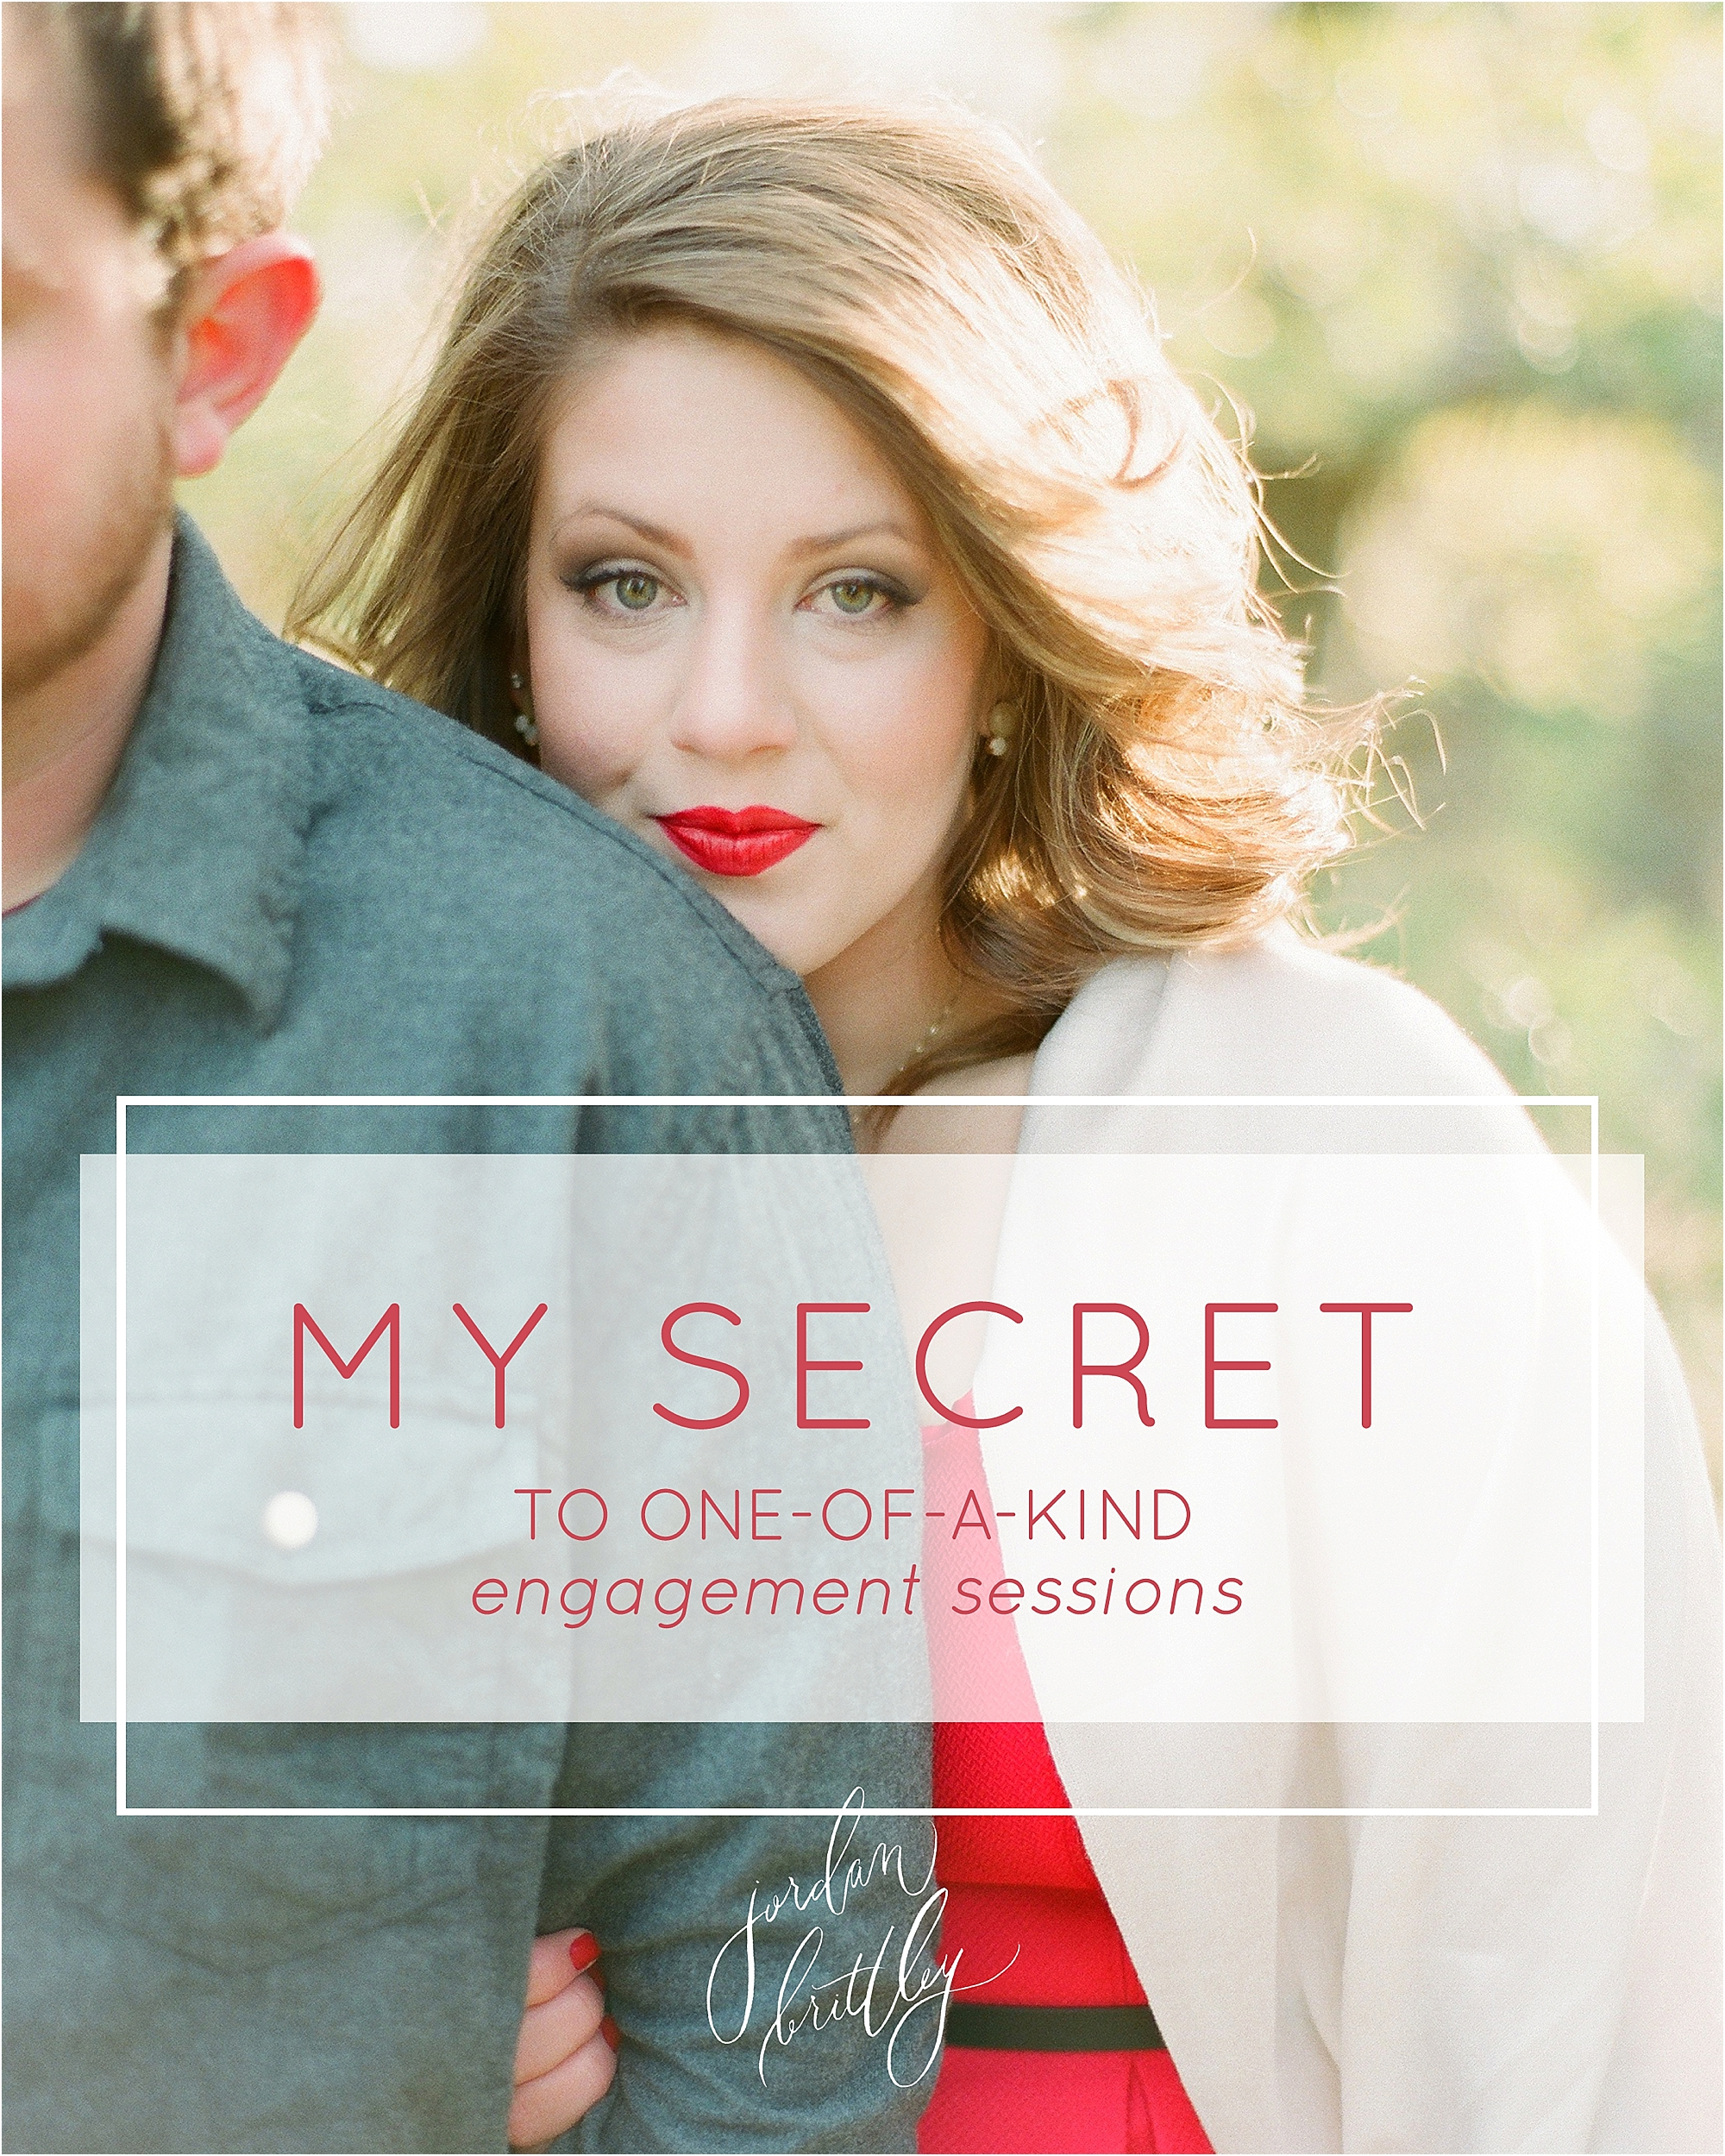 My Secret to One-of-a-Kind Engagement Sessions - The Jordan Brittley Blog